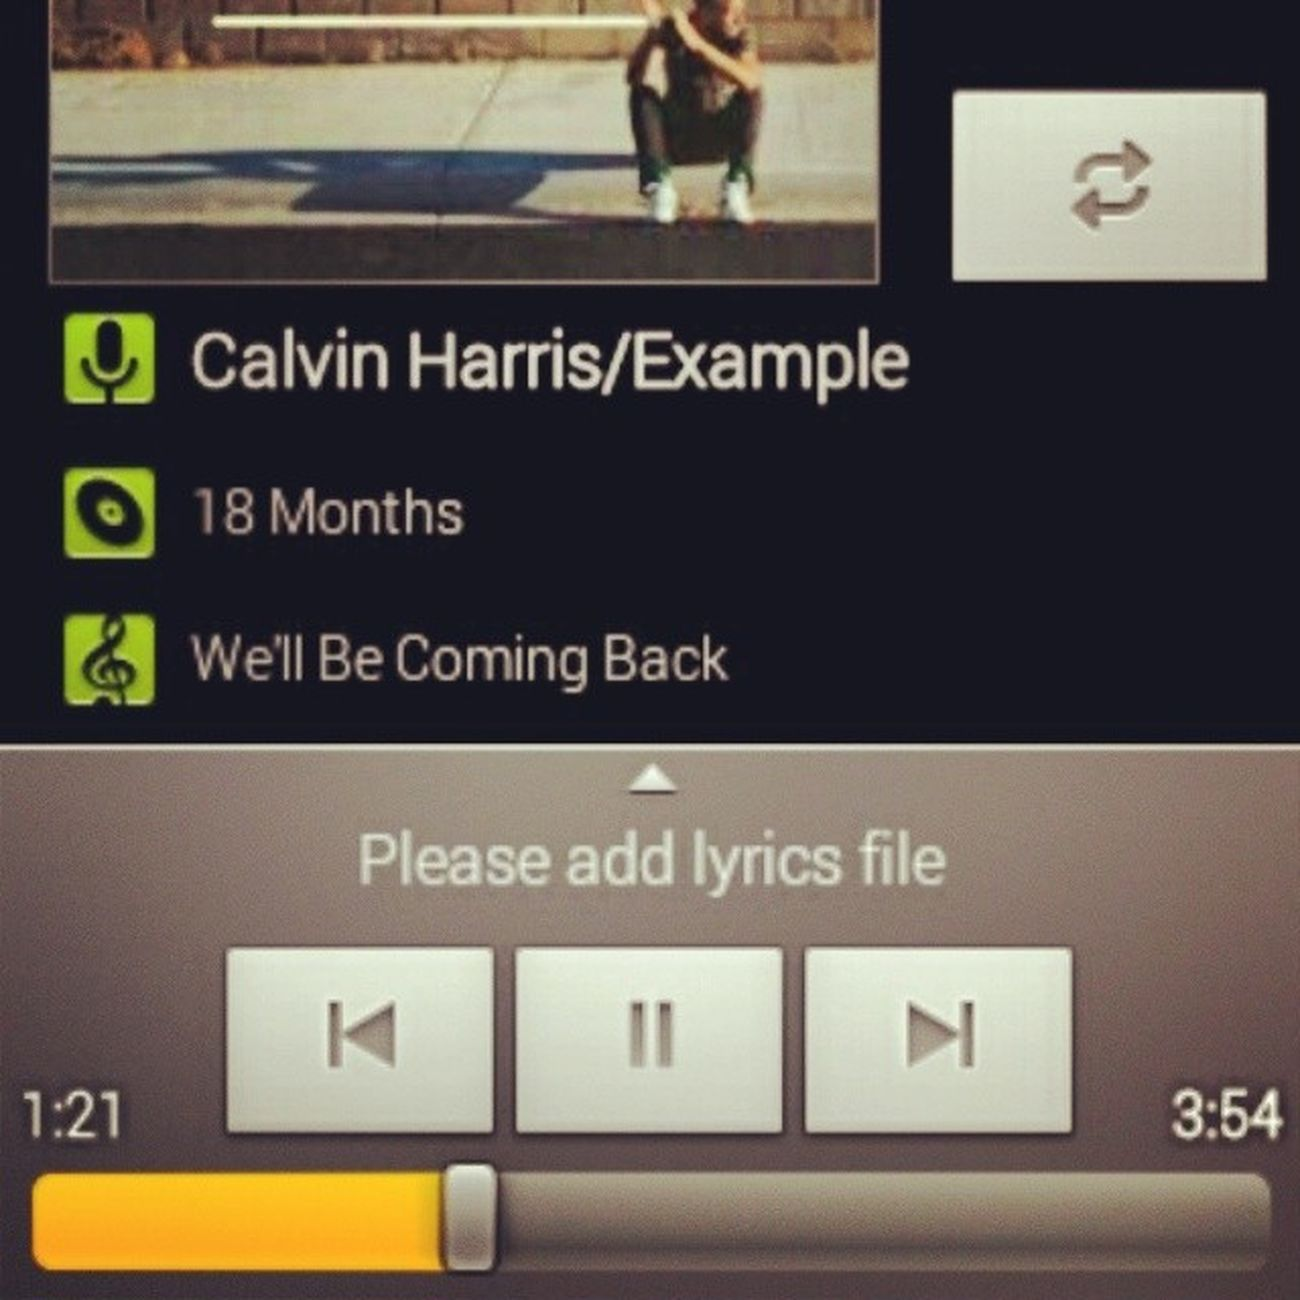 Goodmorning @calvinharris @example WellBeComingBack 18months StillIn friday